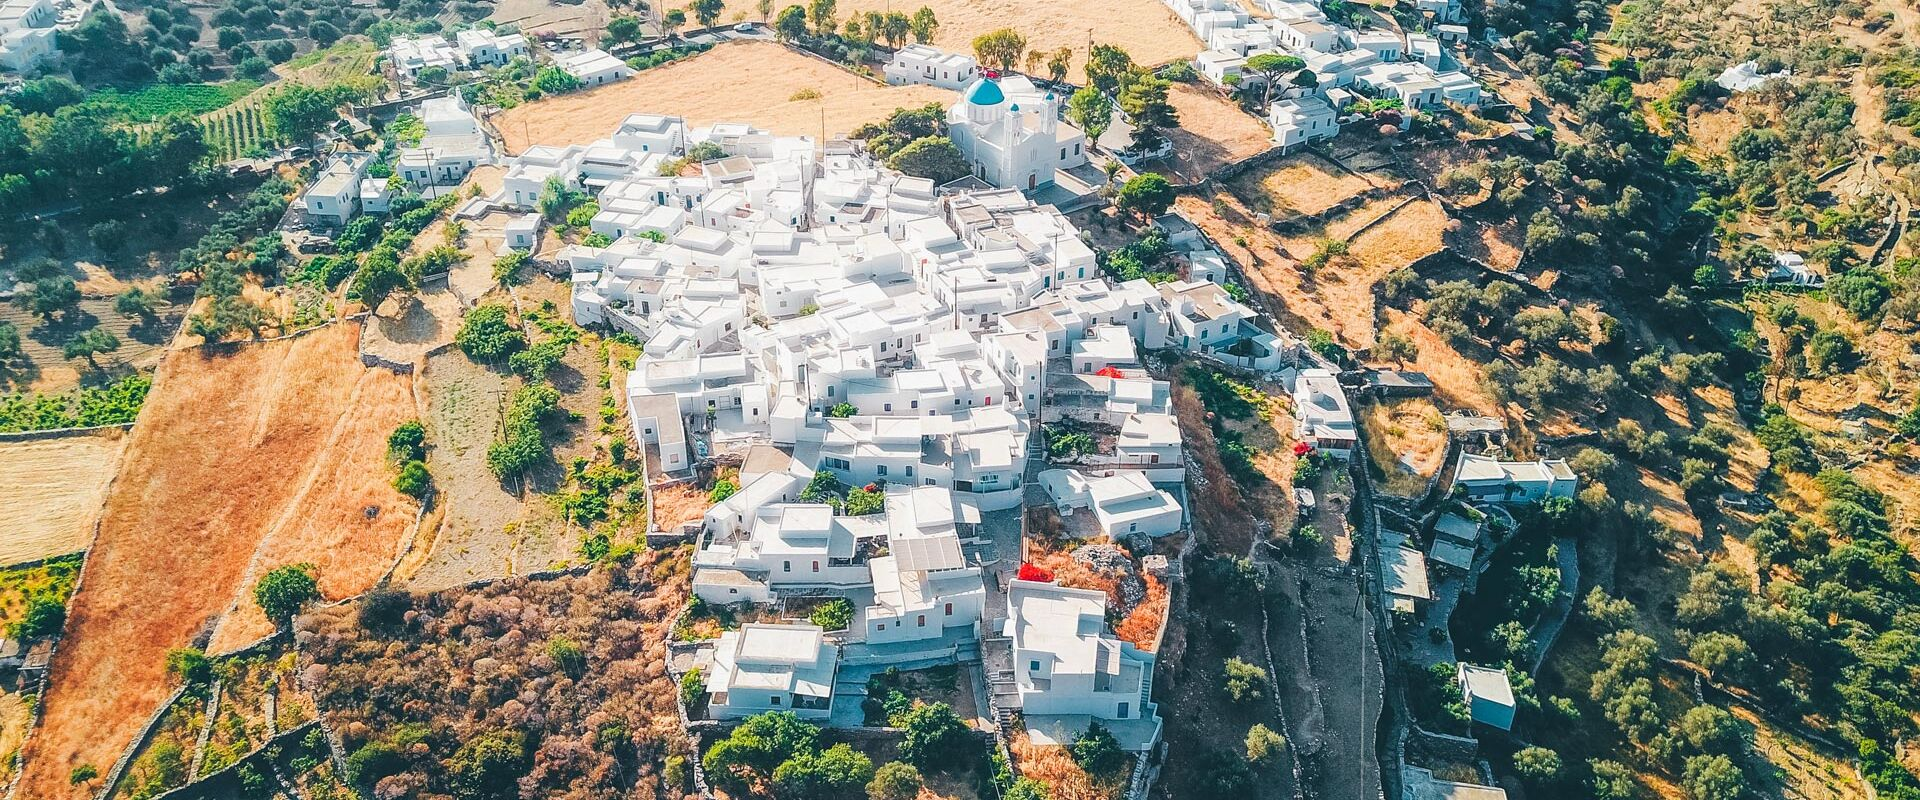 Sifnos' Hora from above